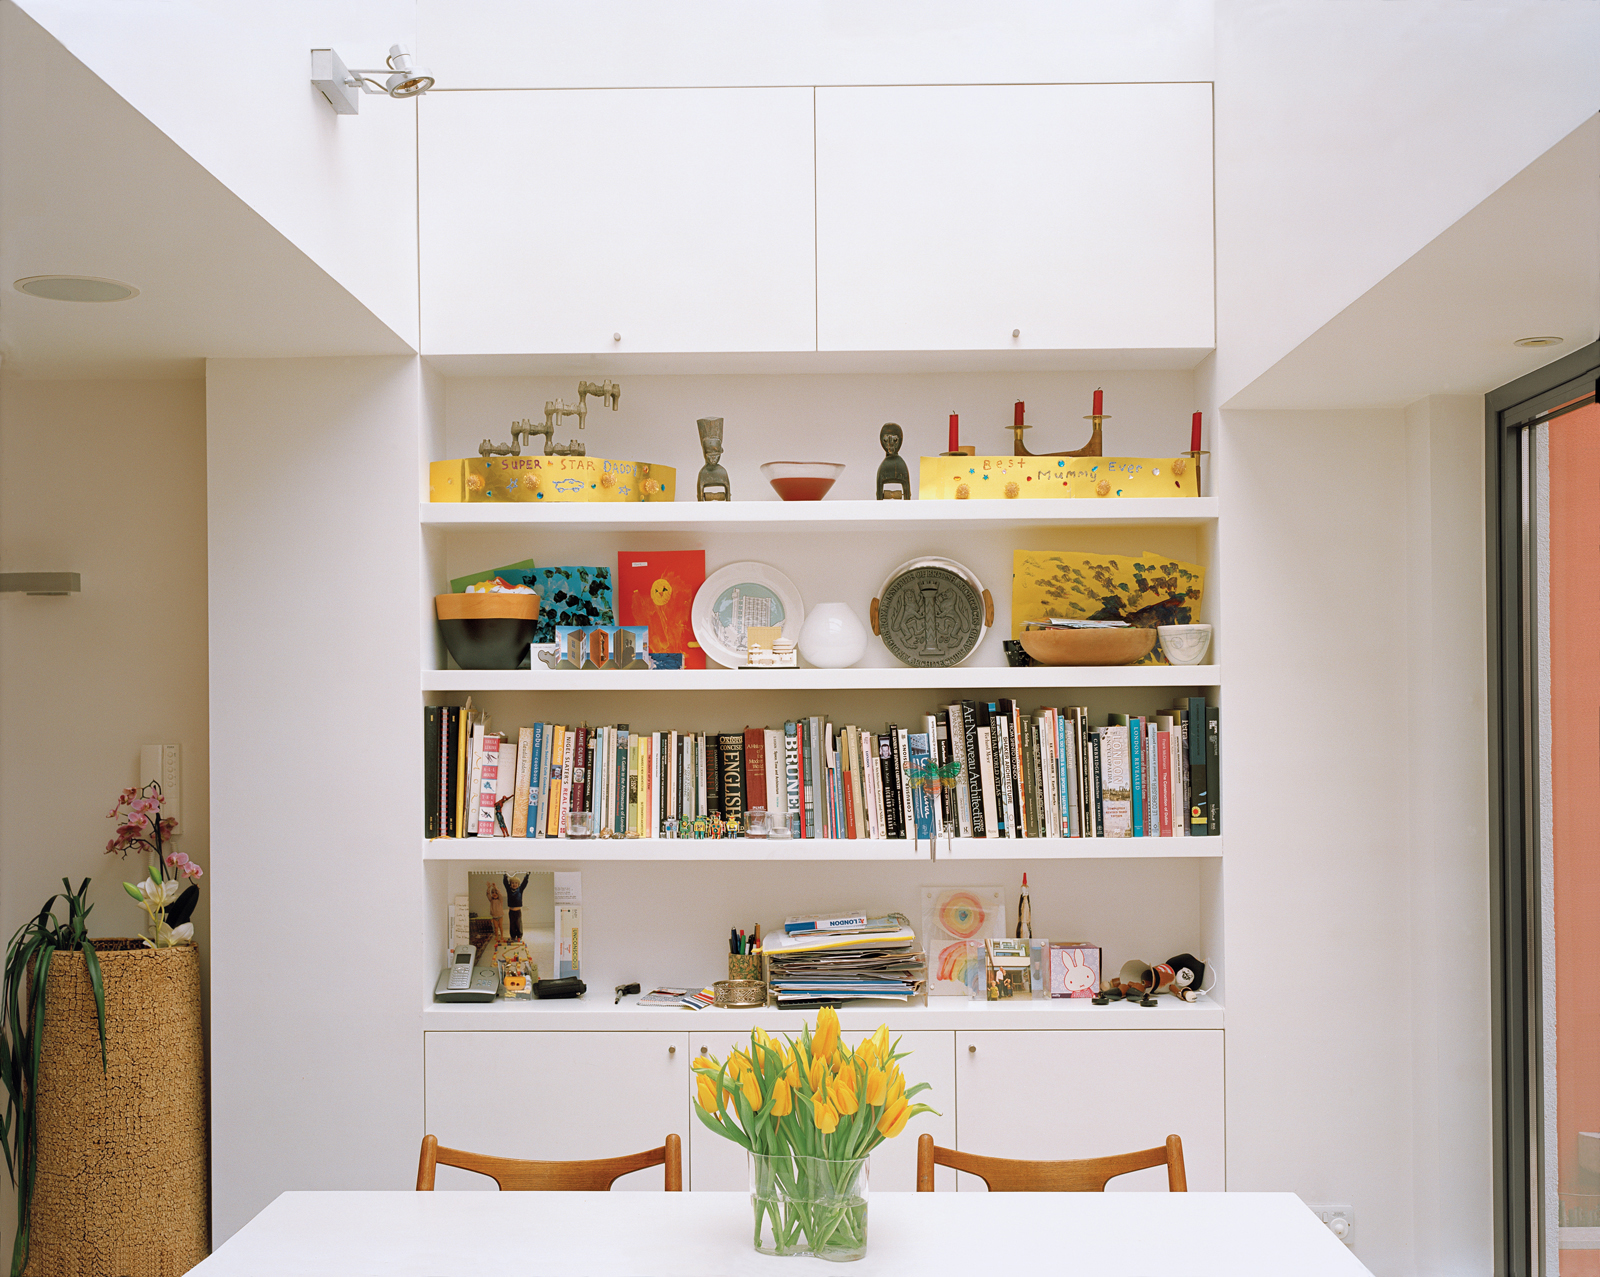 Throughout the house, built-in storage and shelving is cleverly positioned in alcoves and recesses, as in the dining area, which allows clutter to be easily cleared away.